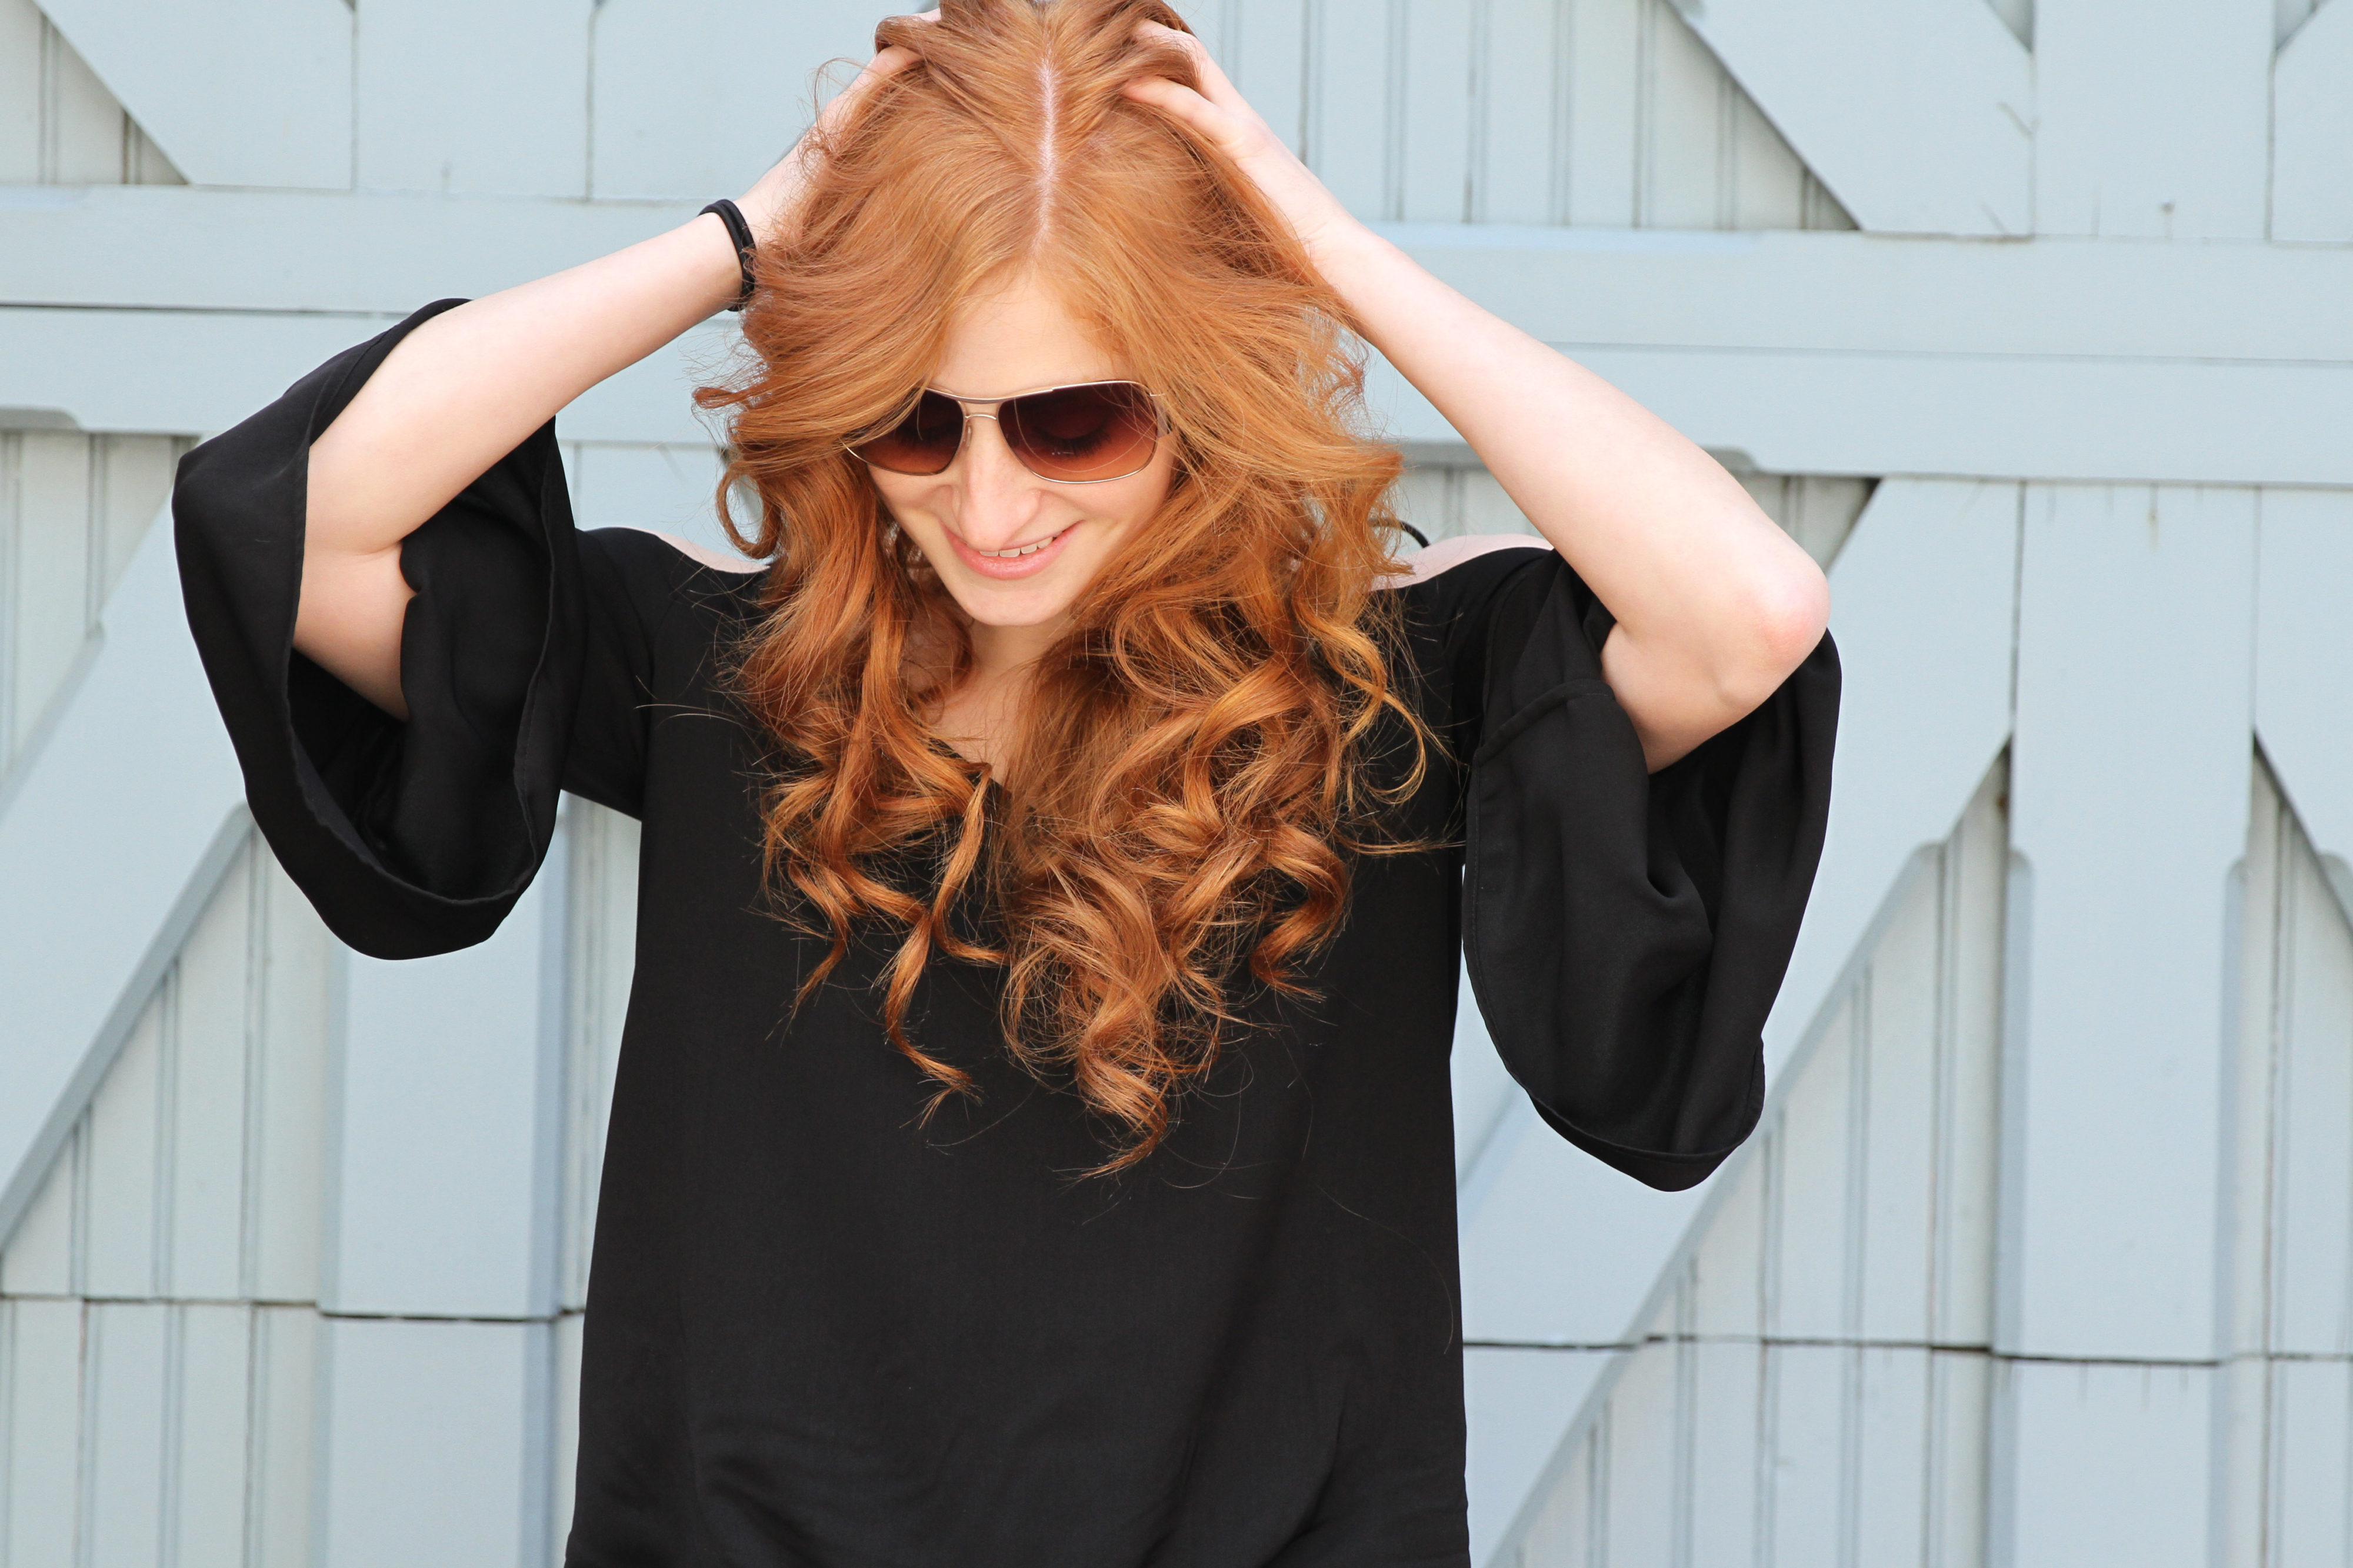 Erin Leigh She's Red haute Redhead smiling and looking down laid back in all black top